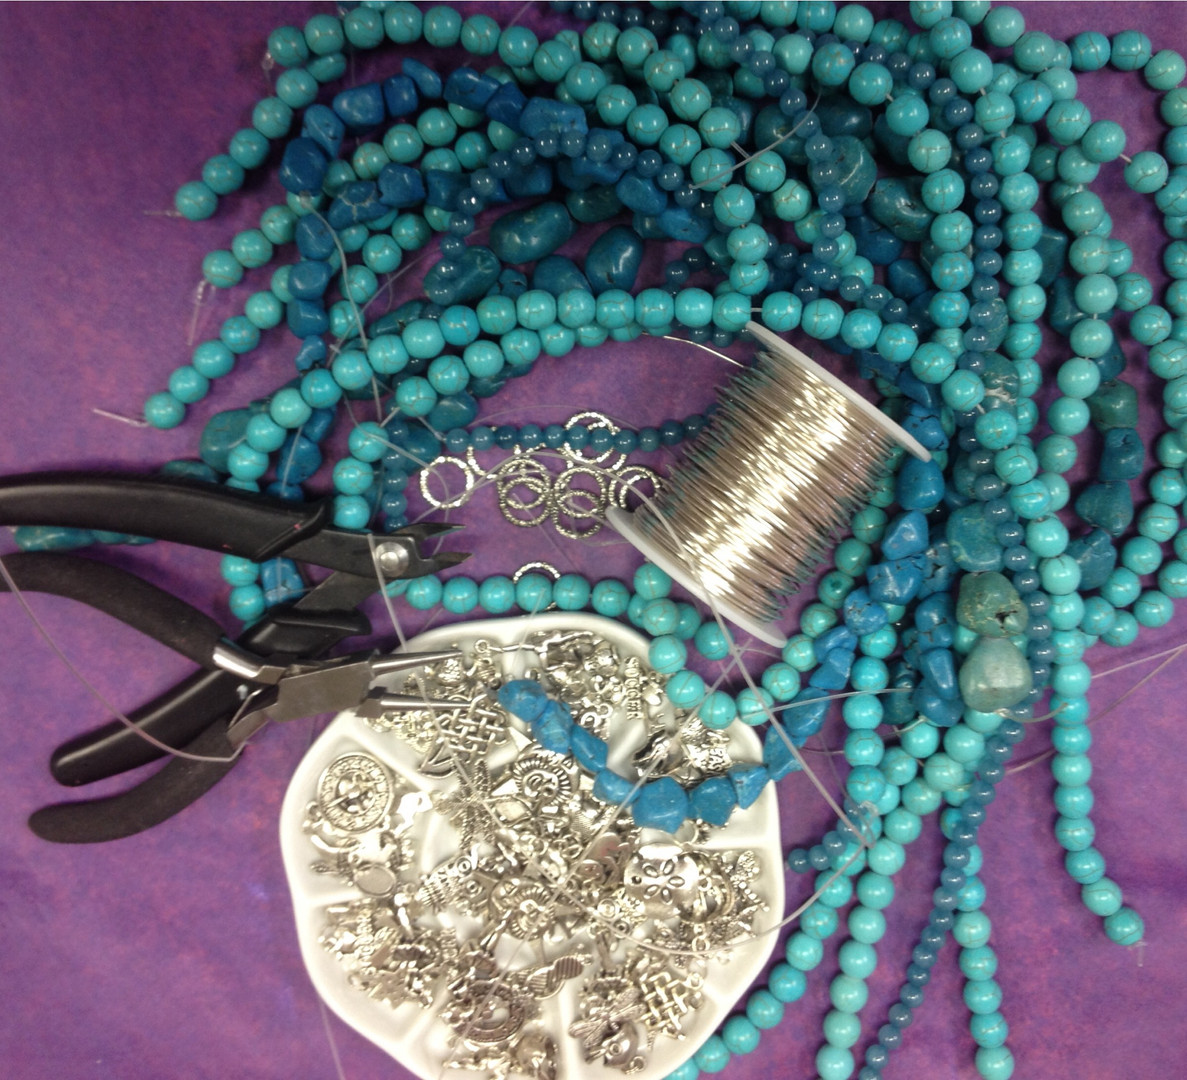 jewelry making class - turquoise.JPG